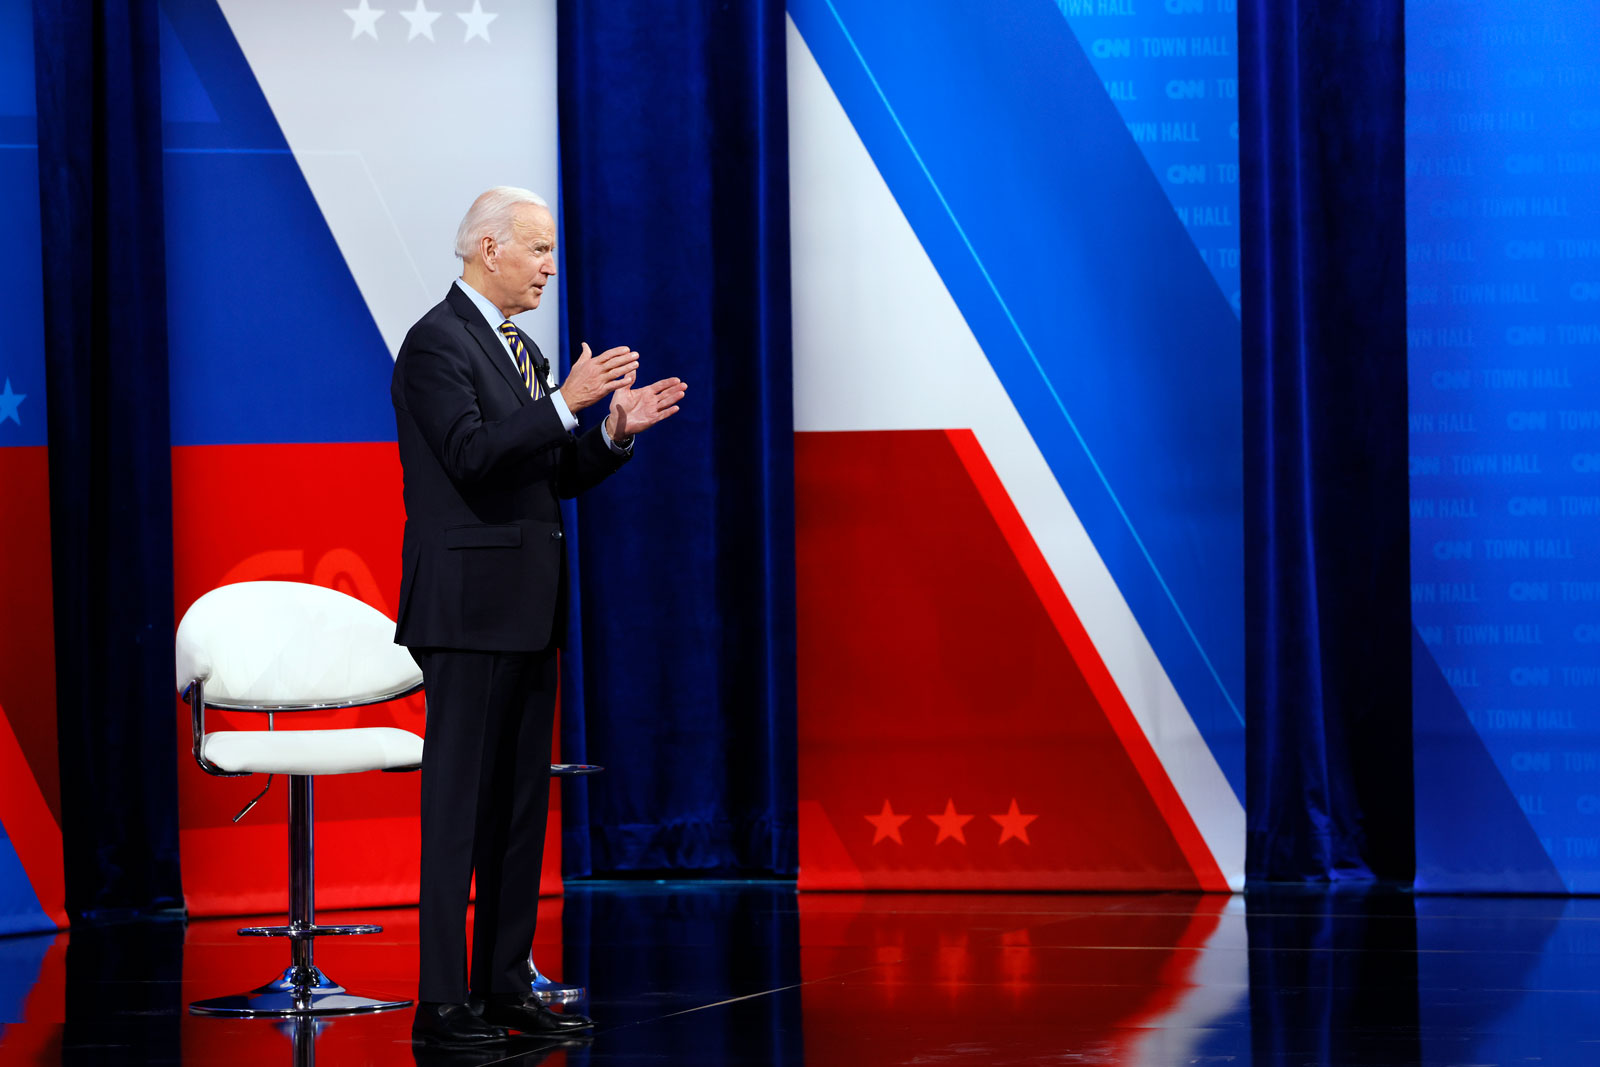 Joe Biden CNN town hall: Live updates – CNN